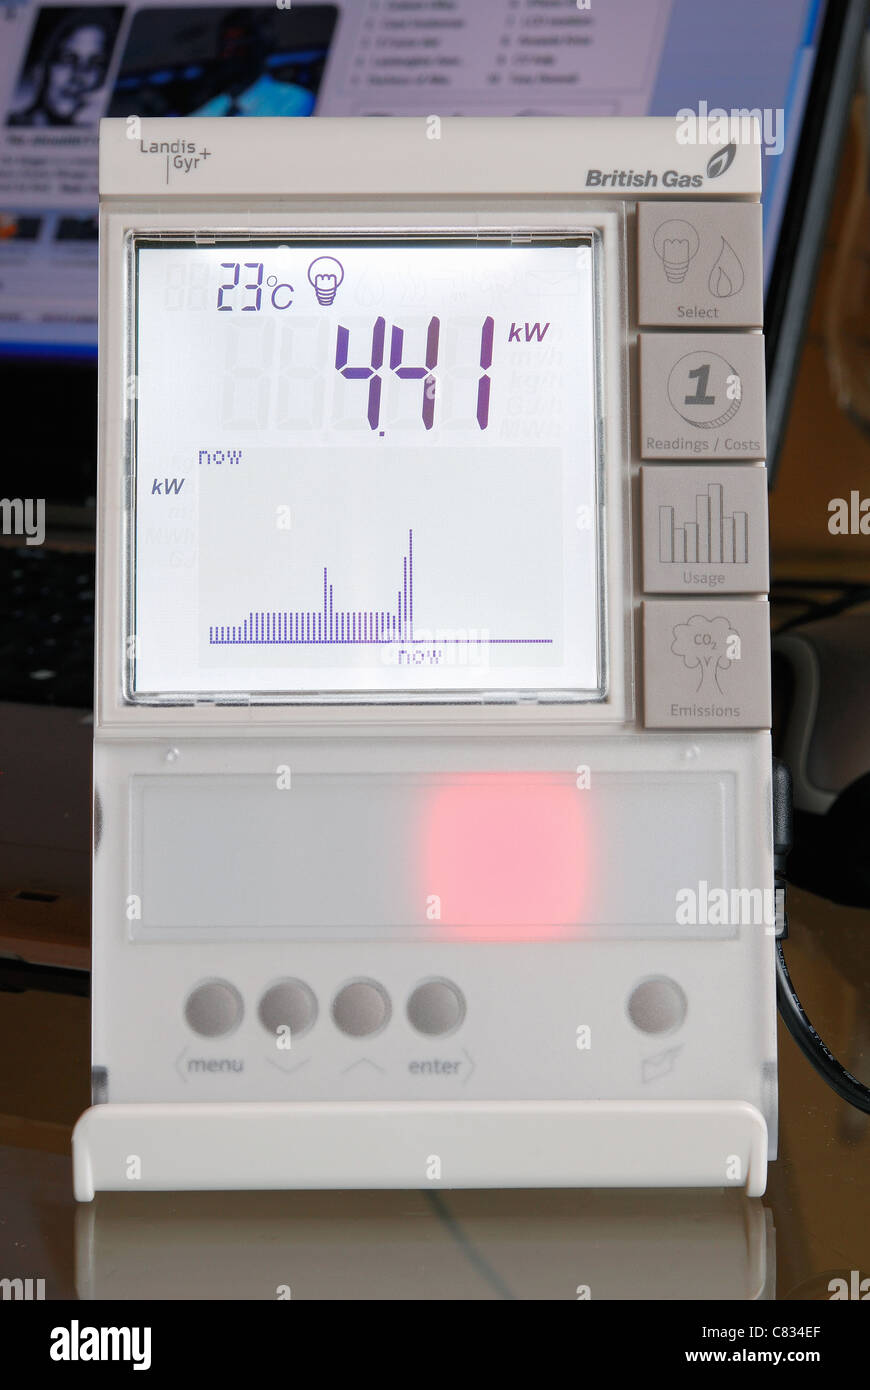 A domestic British Gas Smart Meter in 'electricity' mode, with red light indicating high energy consumption. - Stock Image